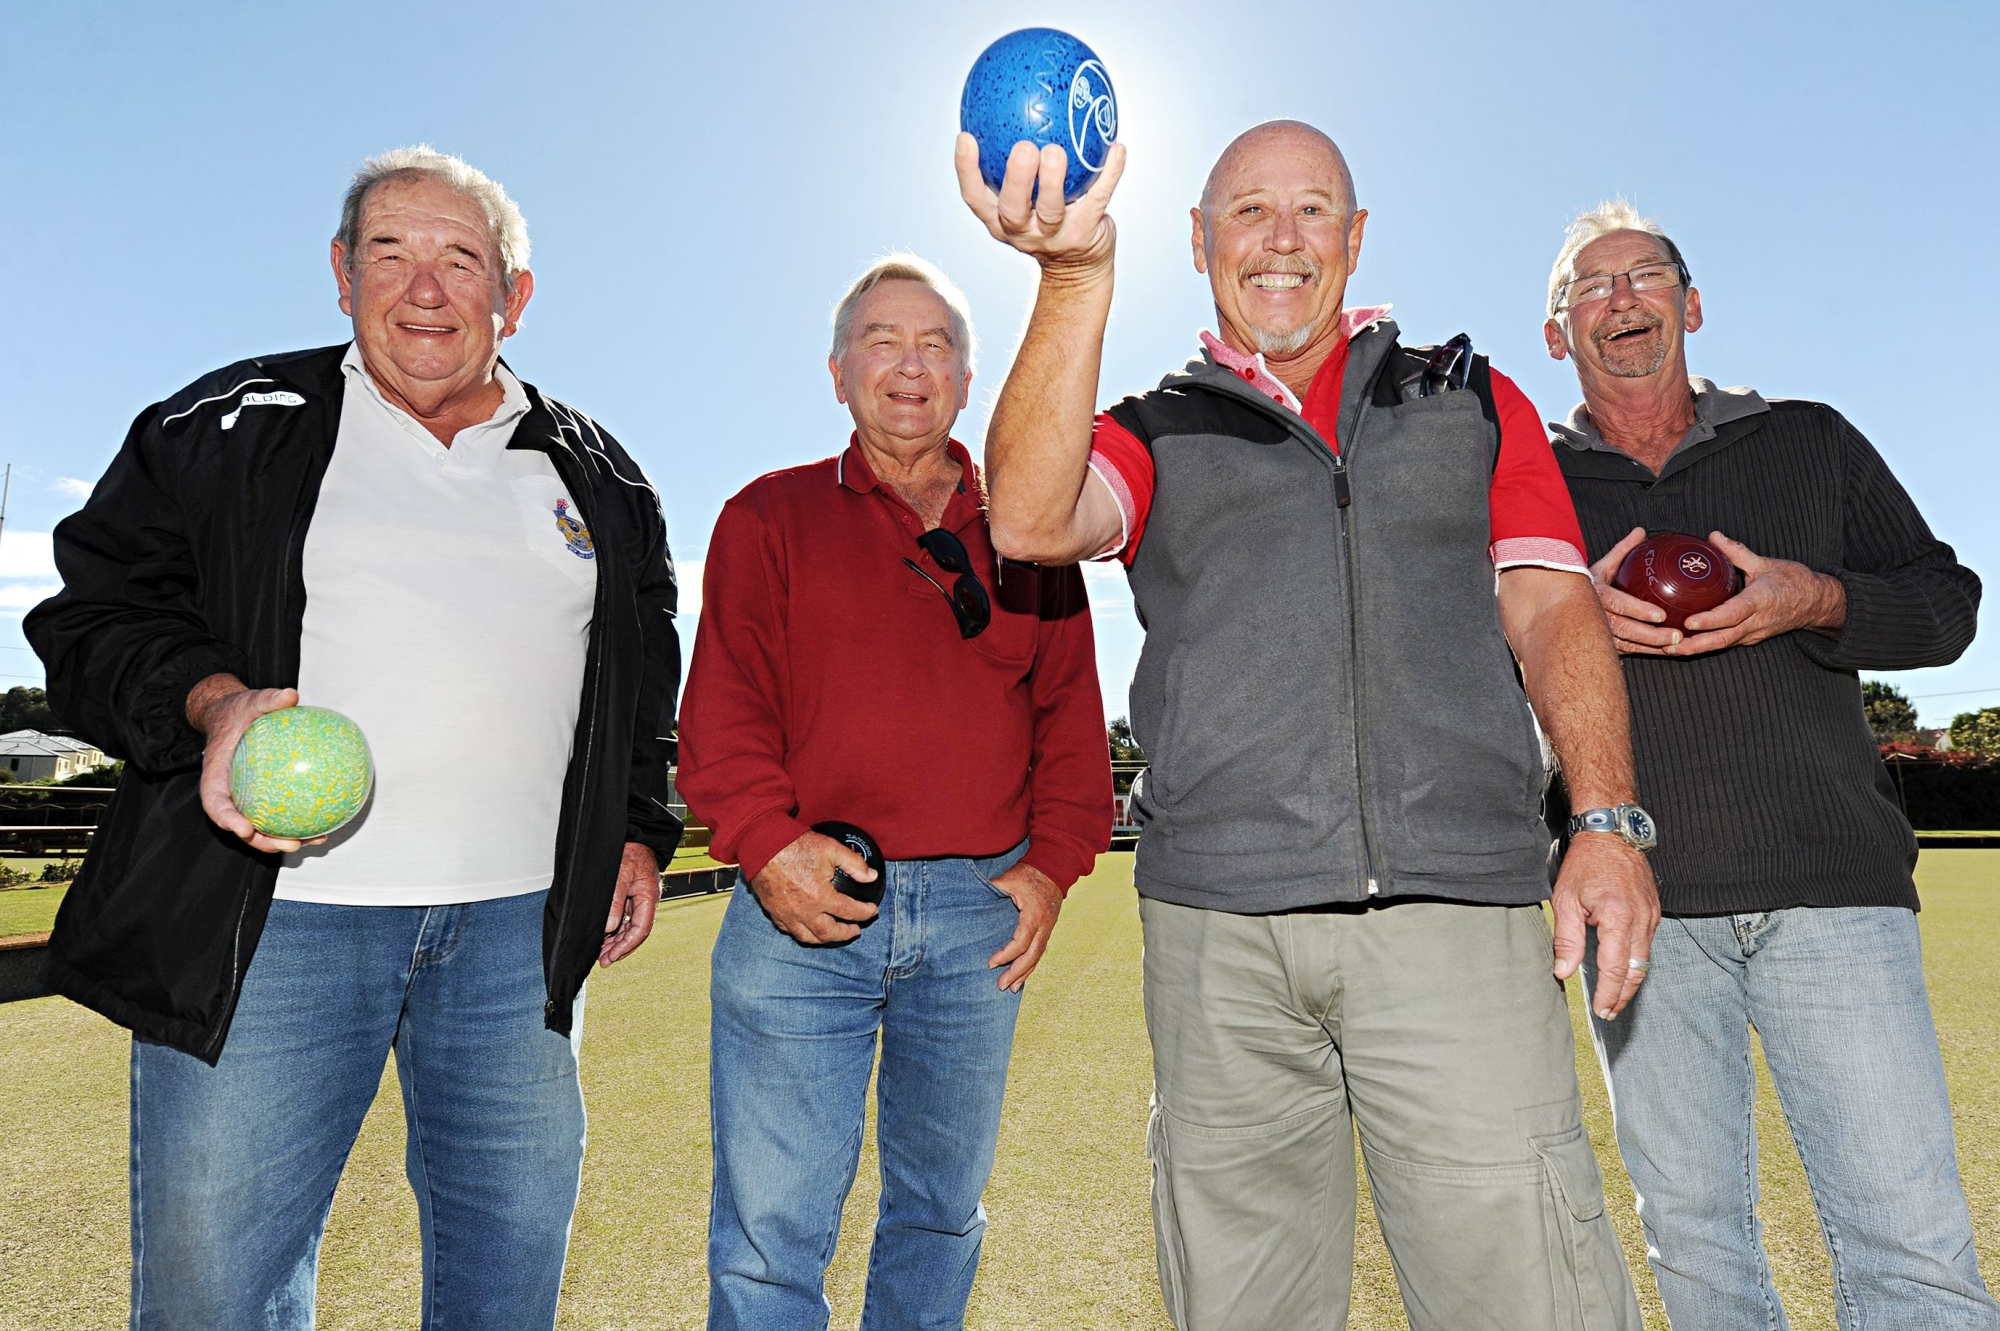 Nollamara Bowling Club members, from left, Maurice Lehmann, John Limas, John Cowl and Kevin Stewart.